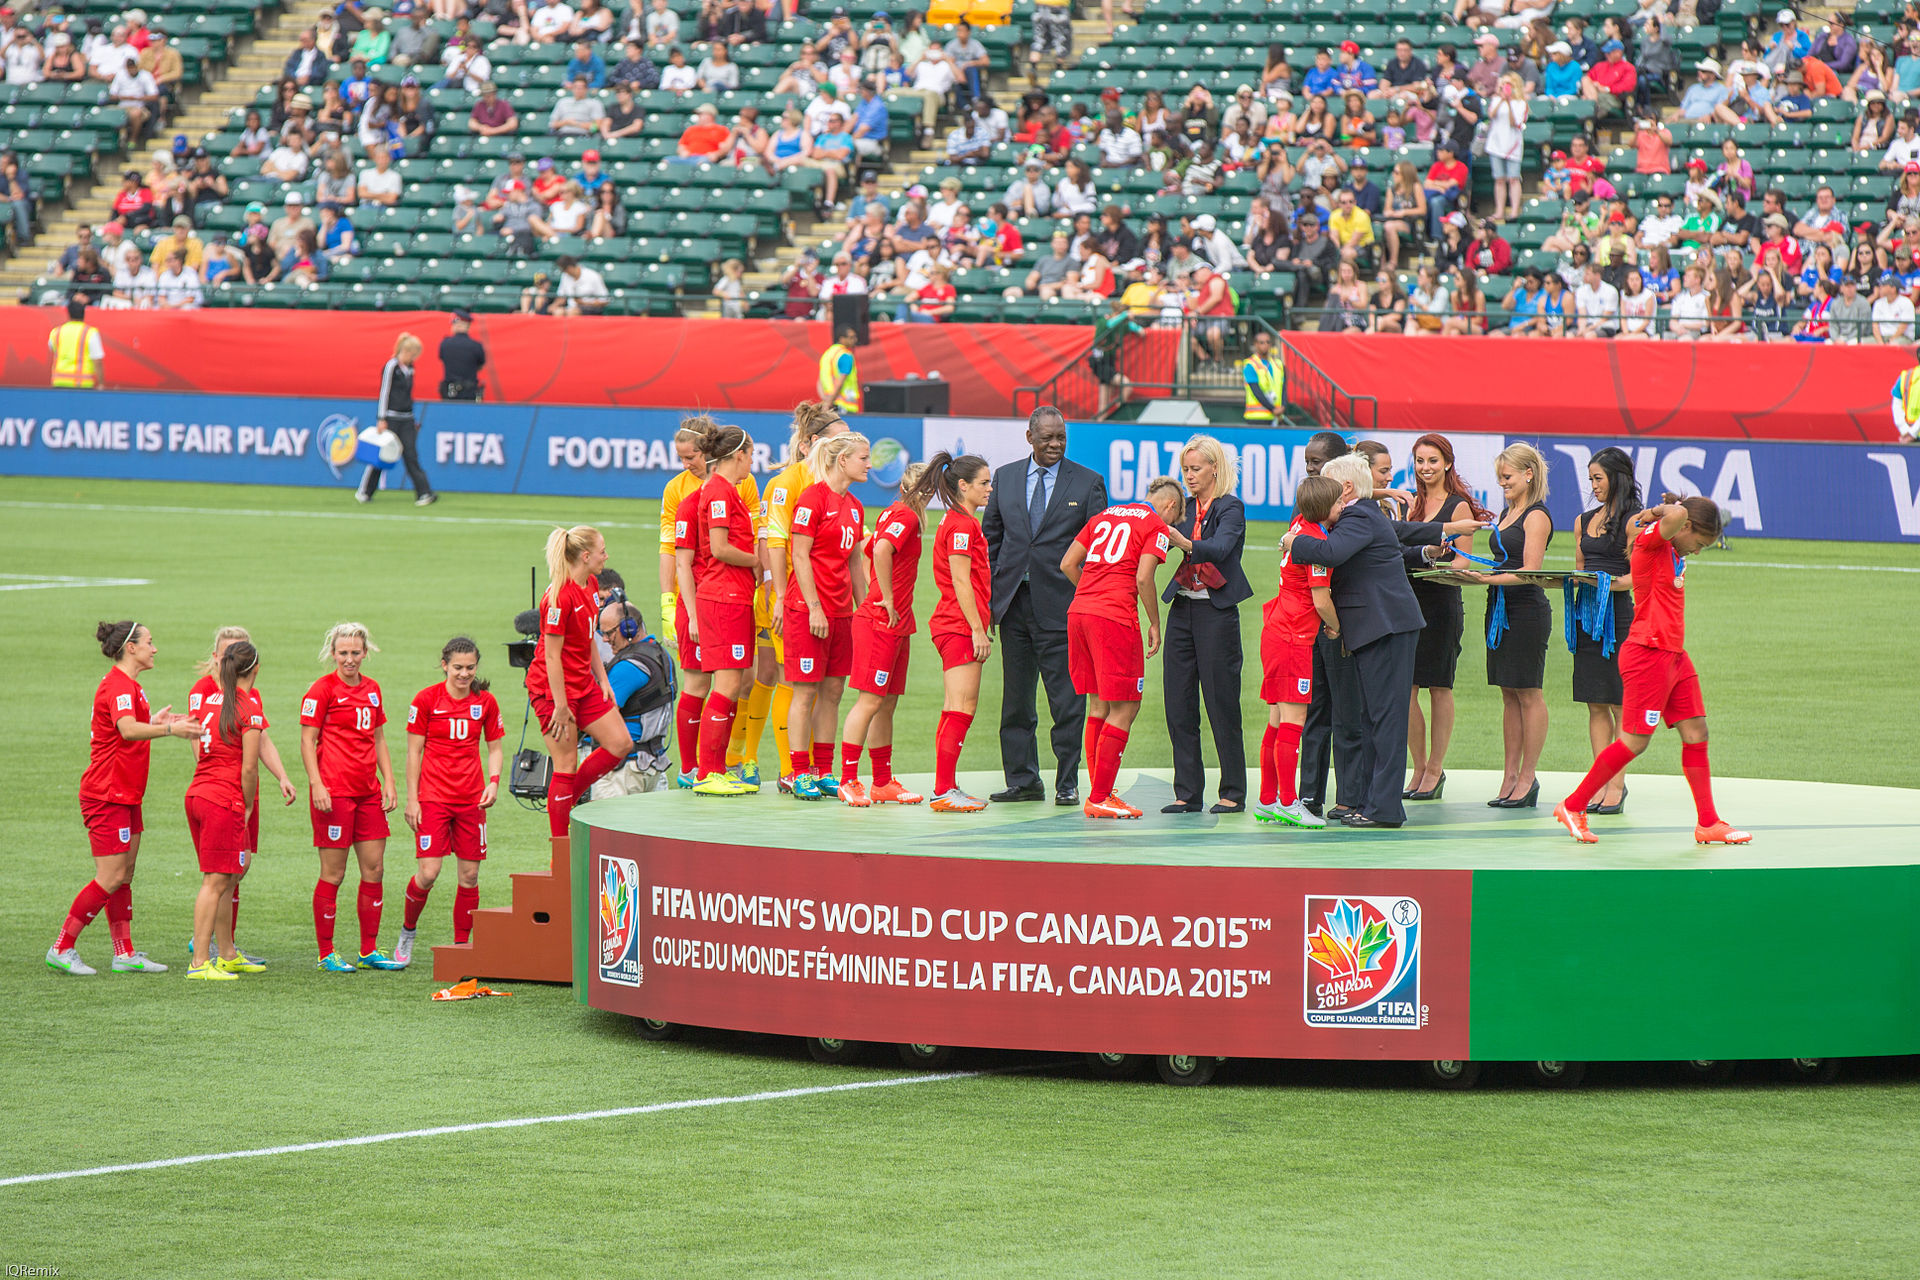 """""""Women's World Cup May Seem Like a Feminist Fairy Tale, But the Fight's Not Over."""" Despite the joyful ending for the U.S. Women's National Team and the increased media attention toward women's soccer, there is far more to achieve and attain for equality within the game. By  Shireen Ahmed. July 10, 2015.  Rewire News."""